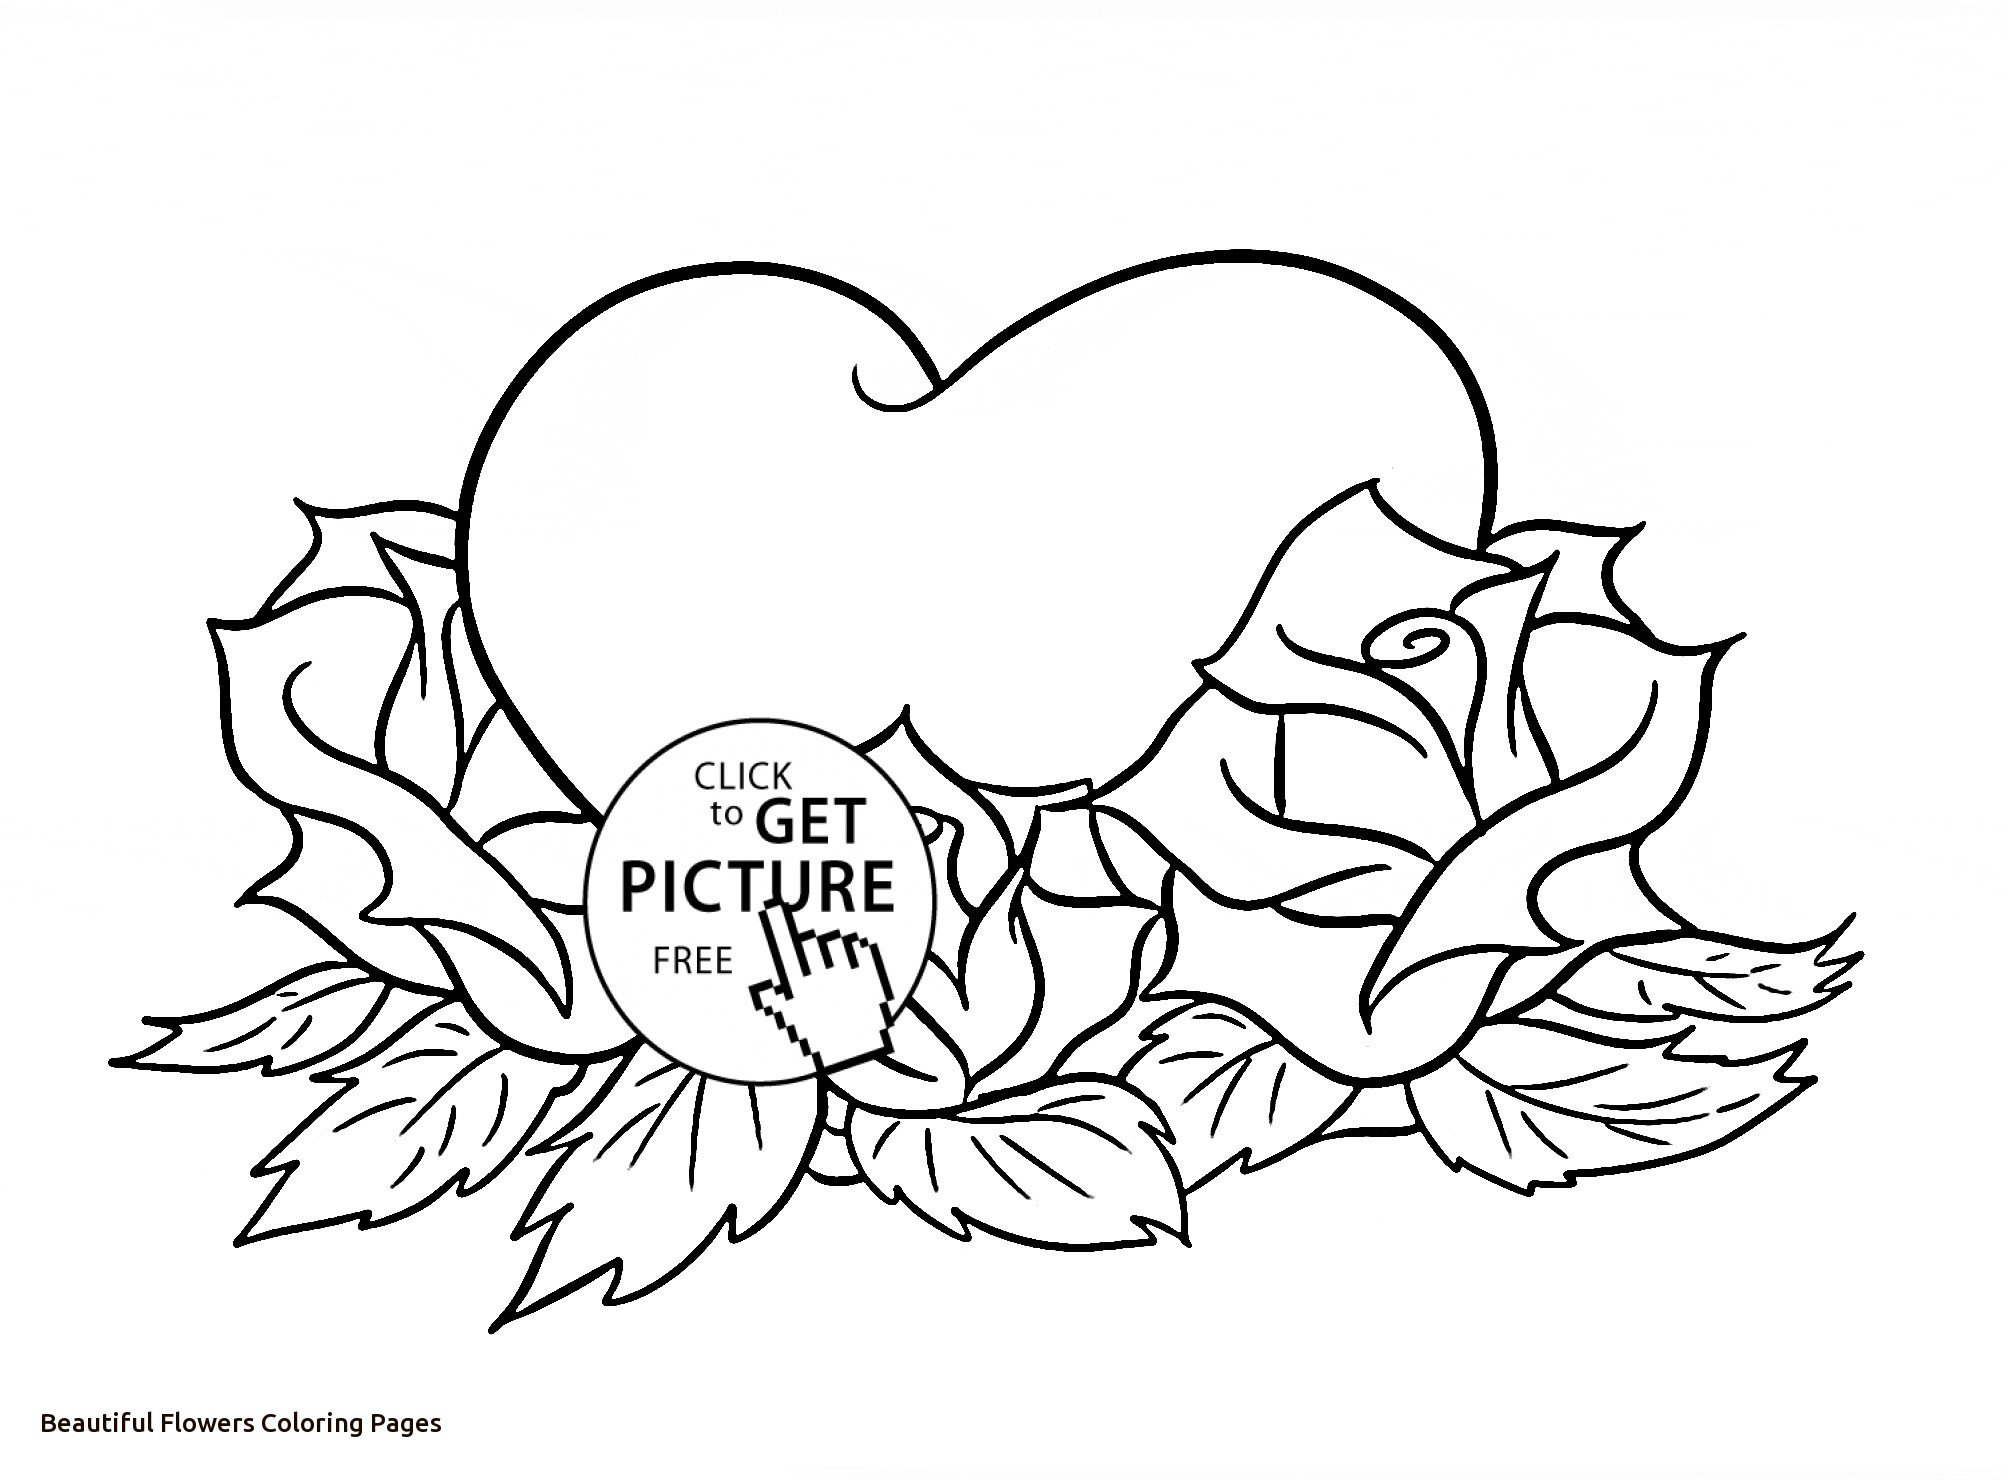 Beautiful flowers drawing step by step at getdrawings free for 2008x1480 beautiful flowers coloring pages for kids fresh beautiful flower izmirmasajfo